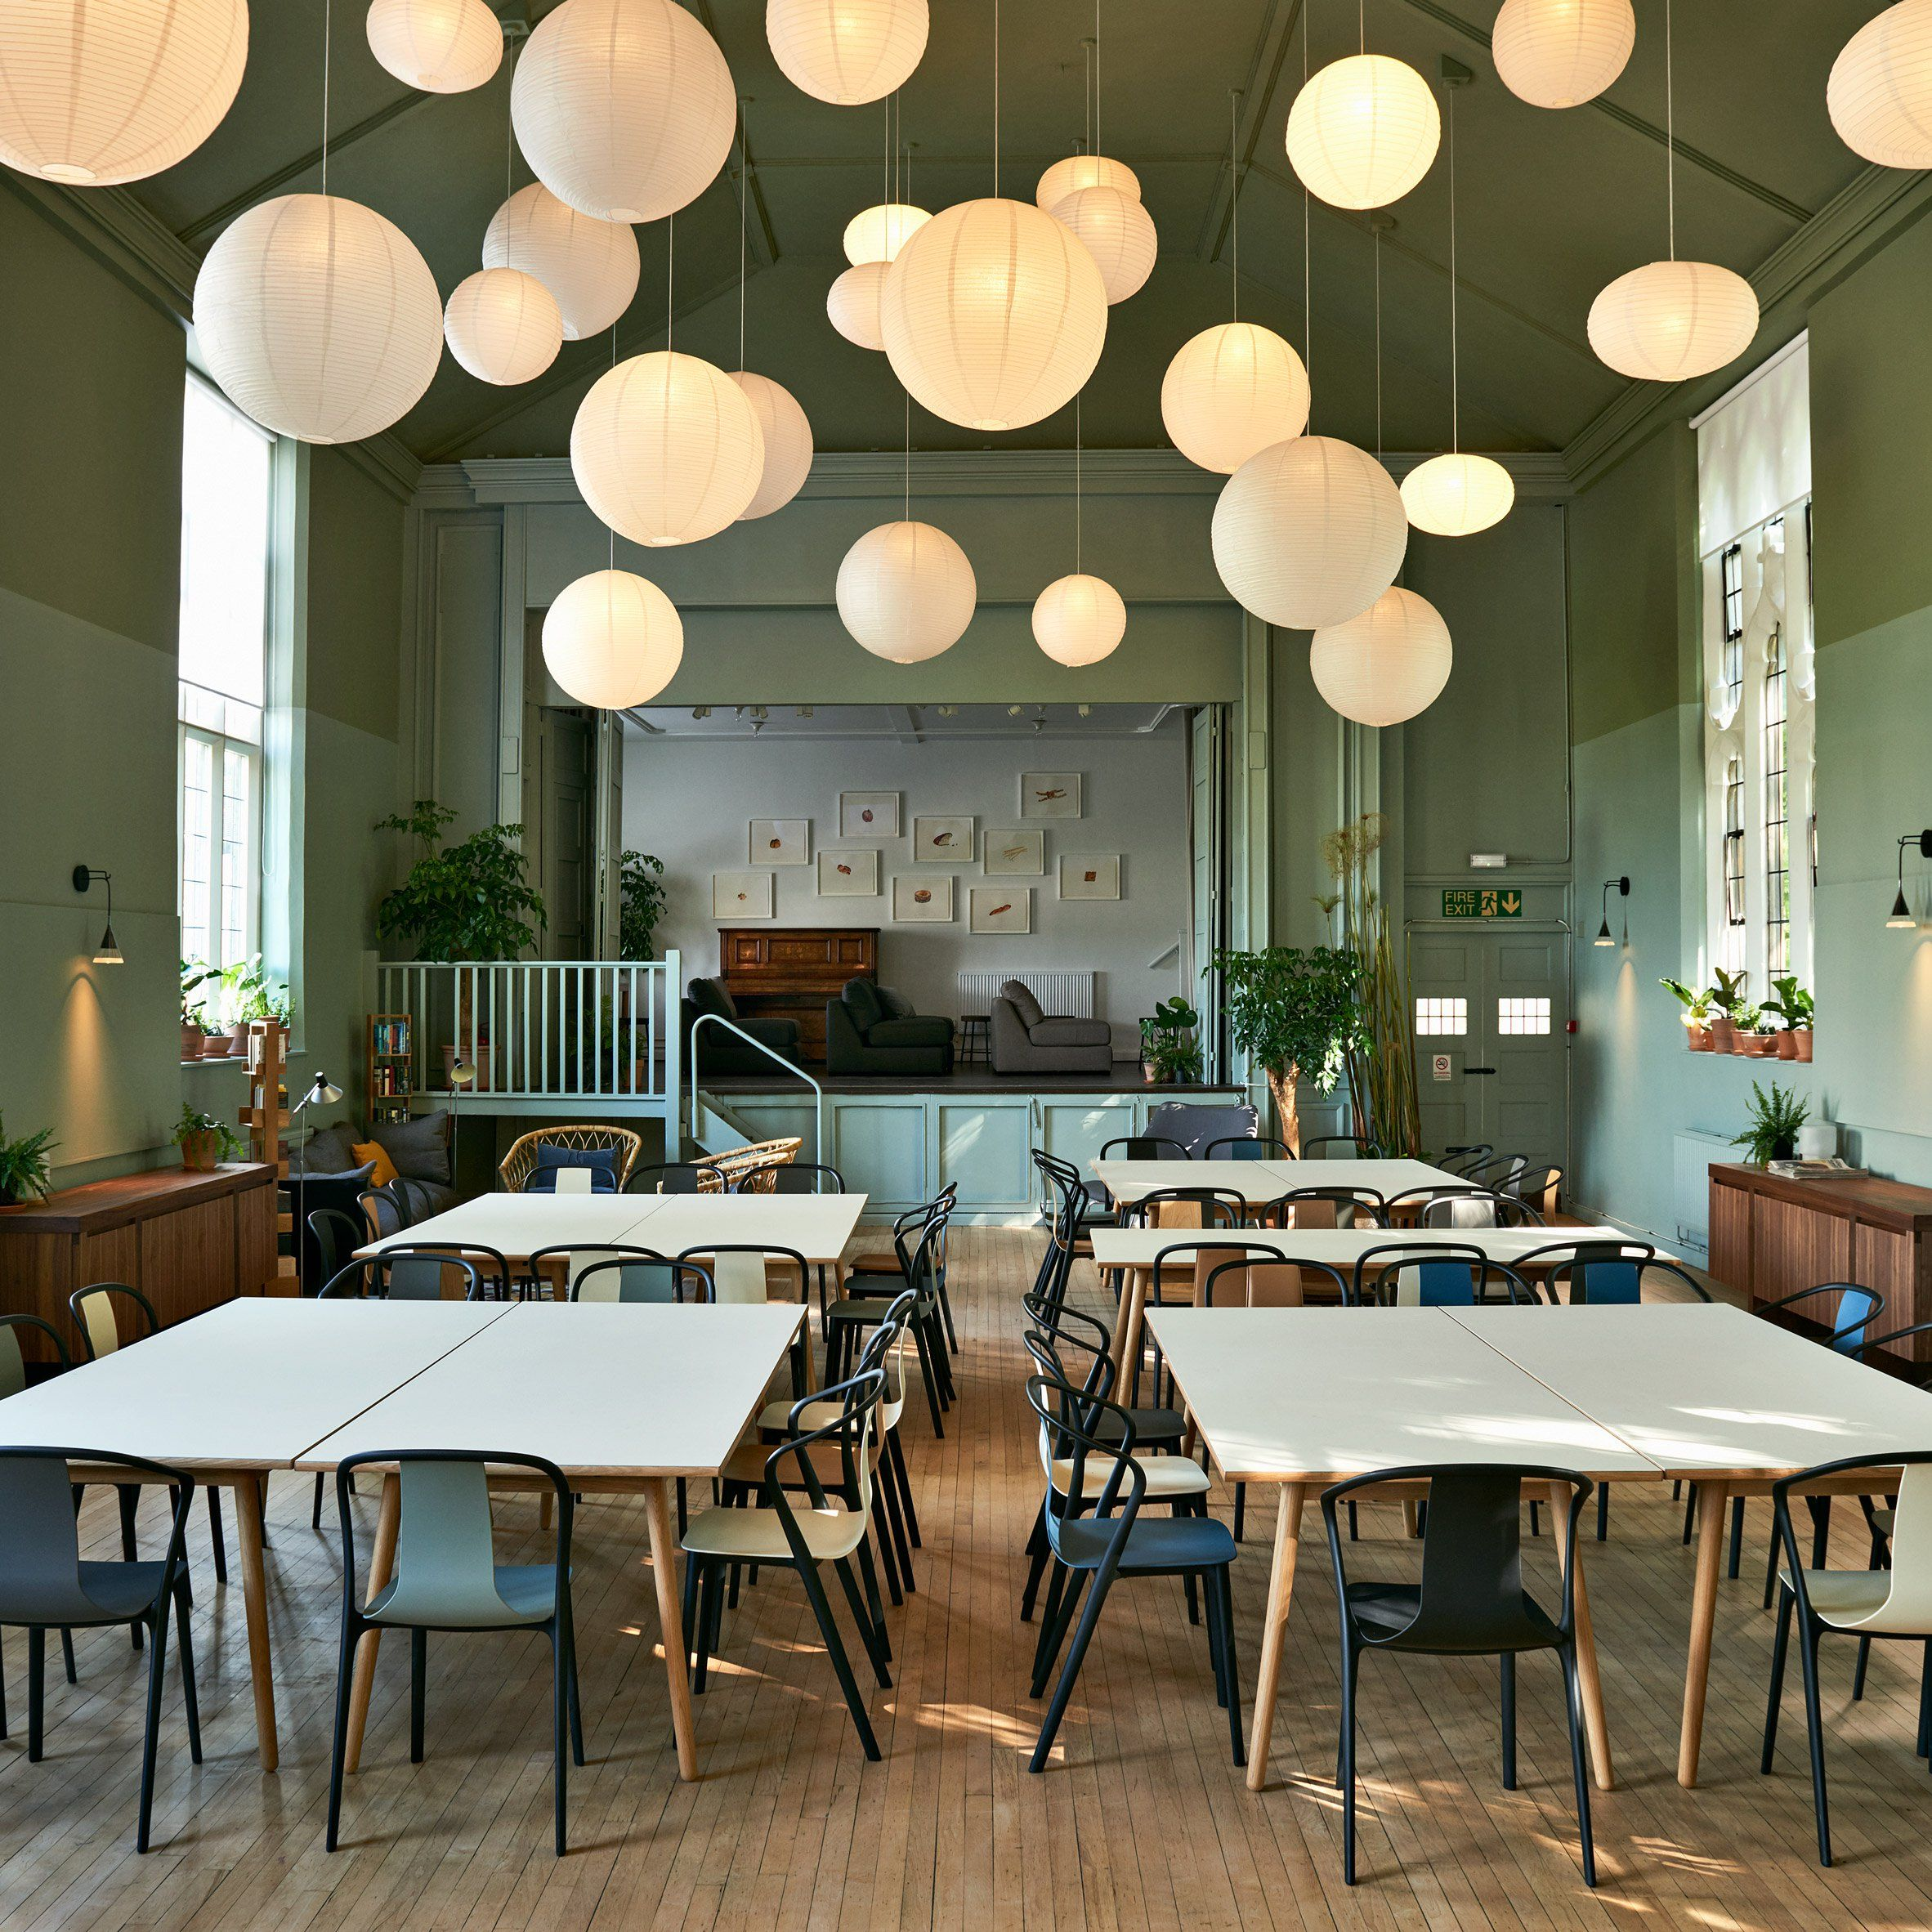 Restaurant Kitchen Interior Design: Renowned Chef Massimo Bottura Has Opened An Ilse Crawford-designed Community Kitchen In